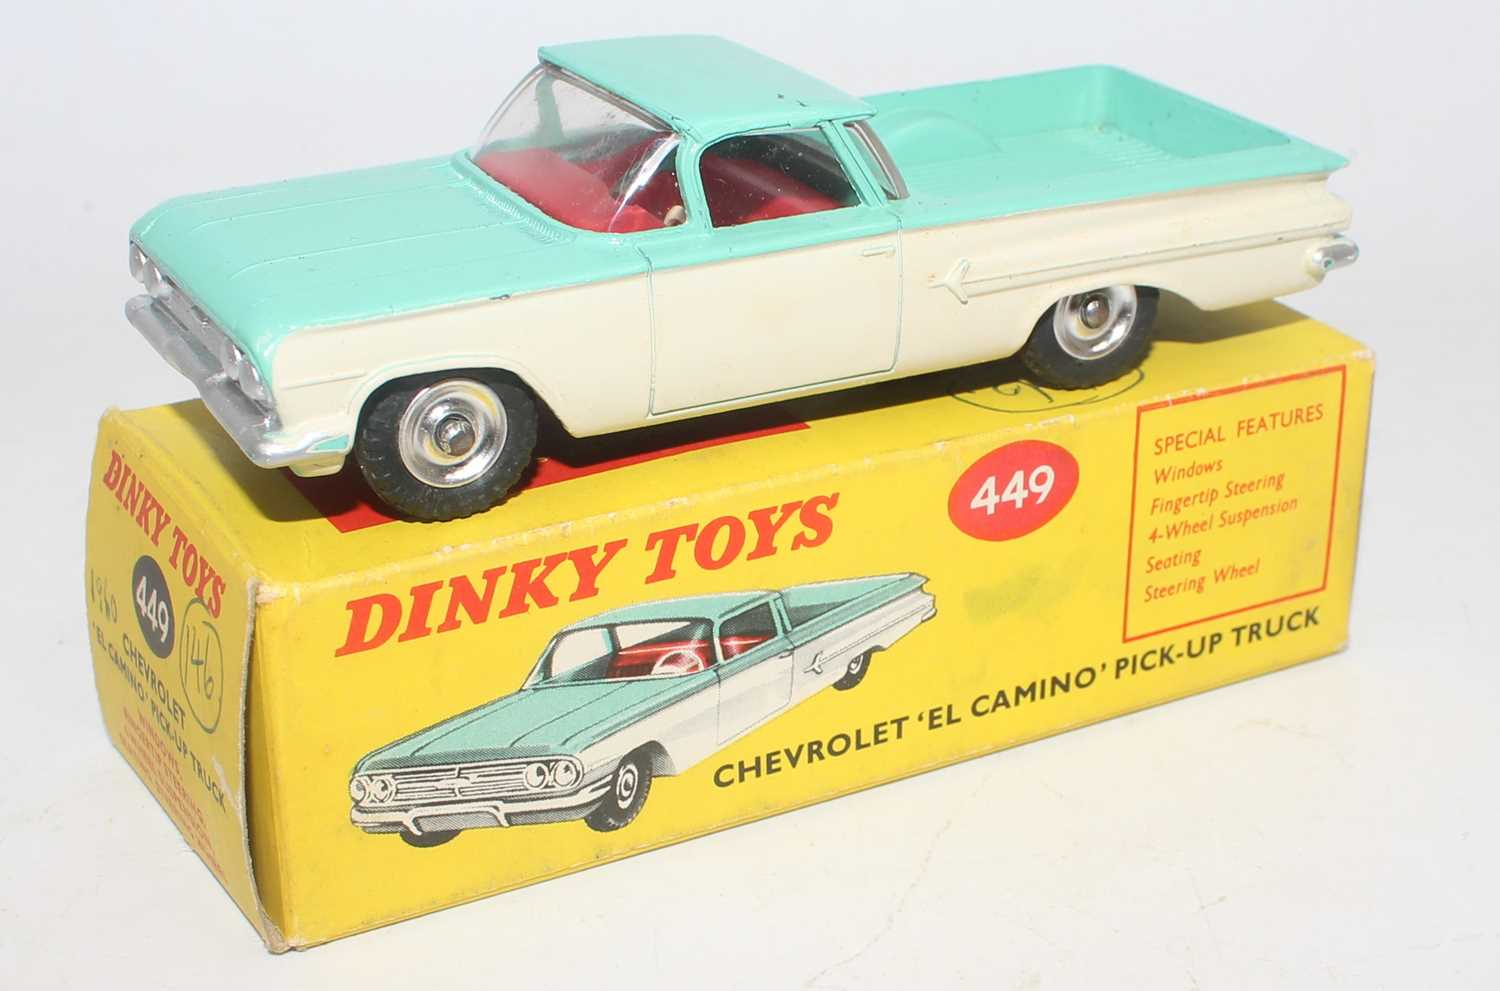 Dinky Toys No. 449 Chevrolet el Camino pickup truck comprising of turquoise and white body with